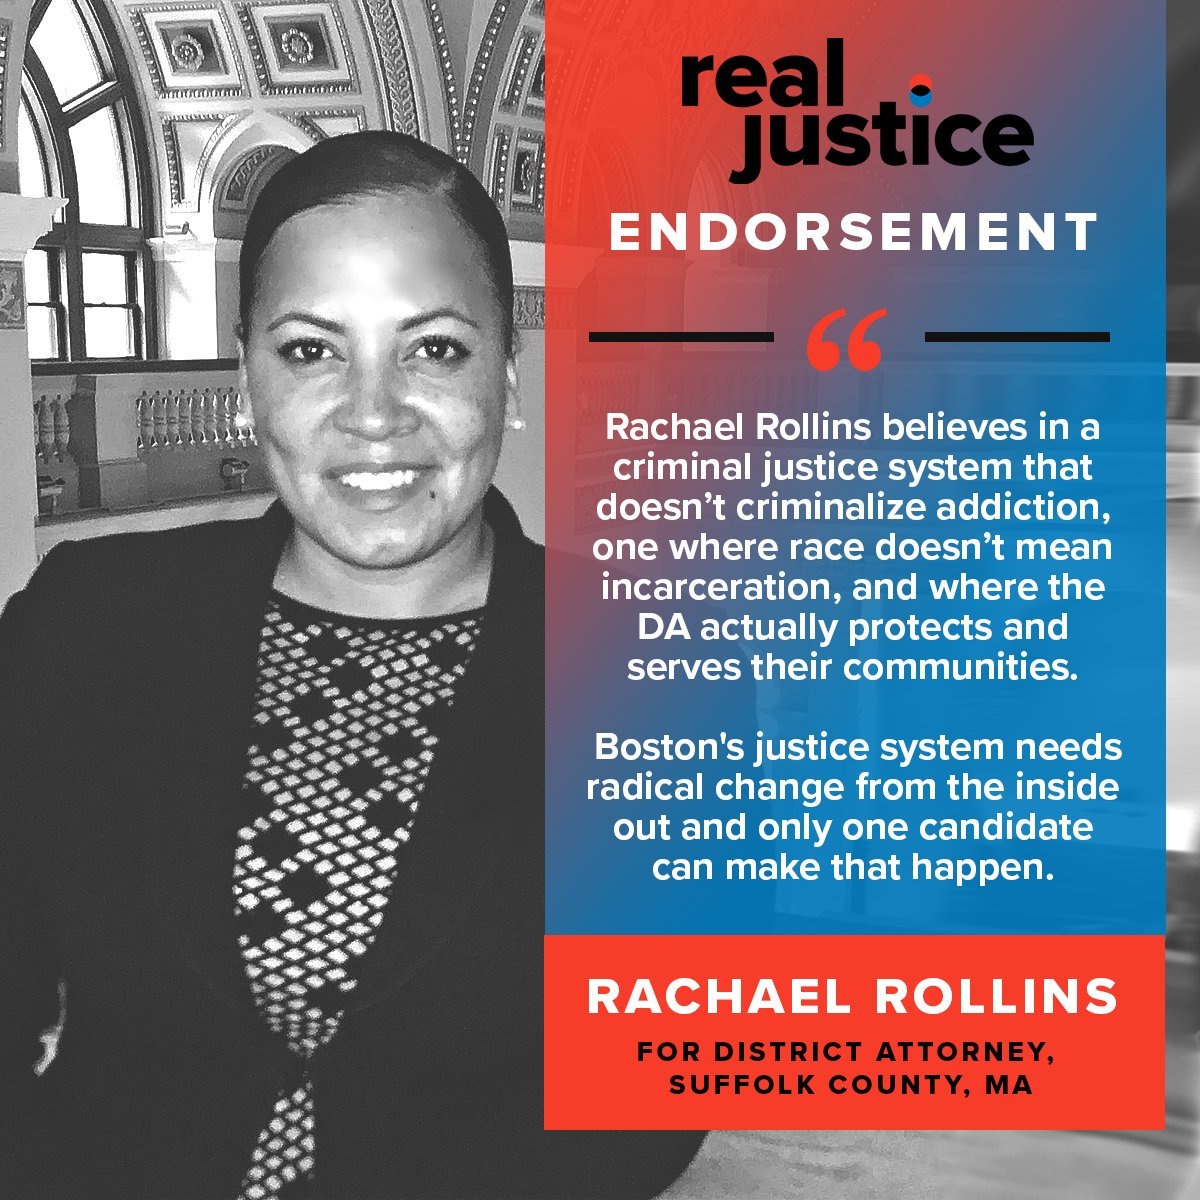 107 of us have now donated $5,000 to help make Rachael Rollins the next DA of Boston, but it's going to take about 3,000 of us giving $200,000 to give her campaign the funding it needs to win!  CHIP IN HERE: https://t.co/sfOec1LAPJ  Let's change the system from the inside out.